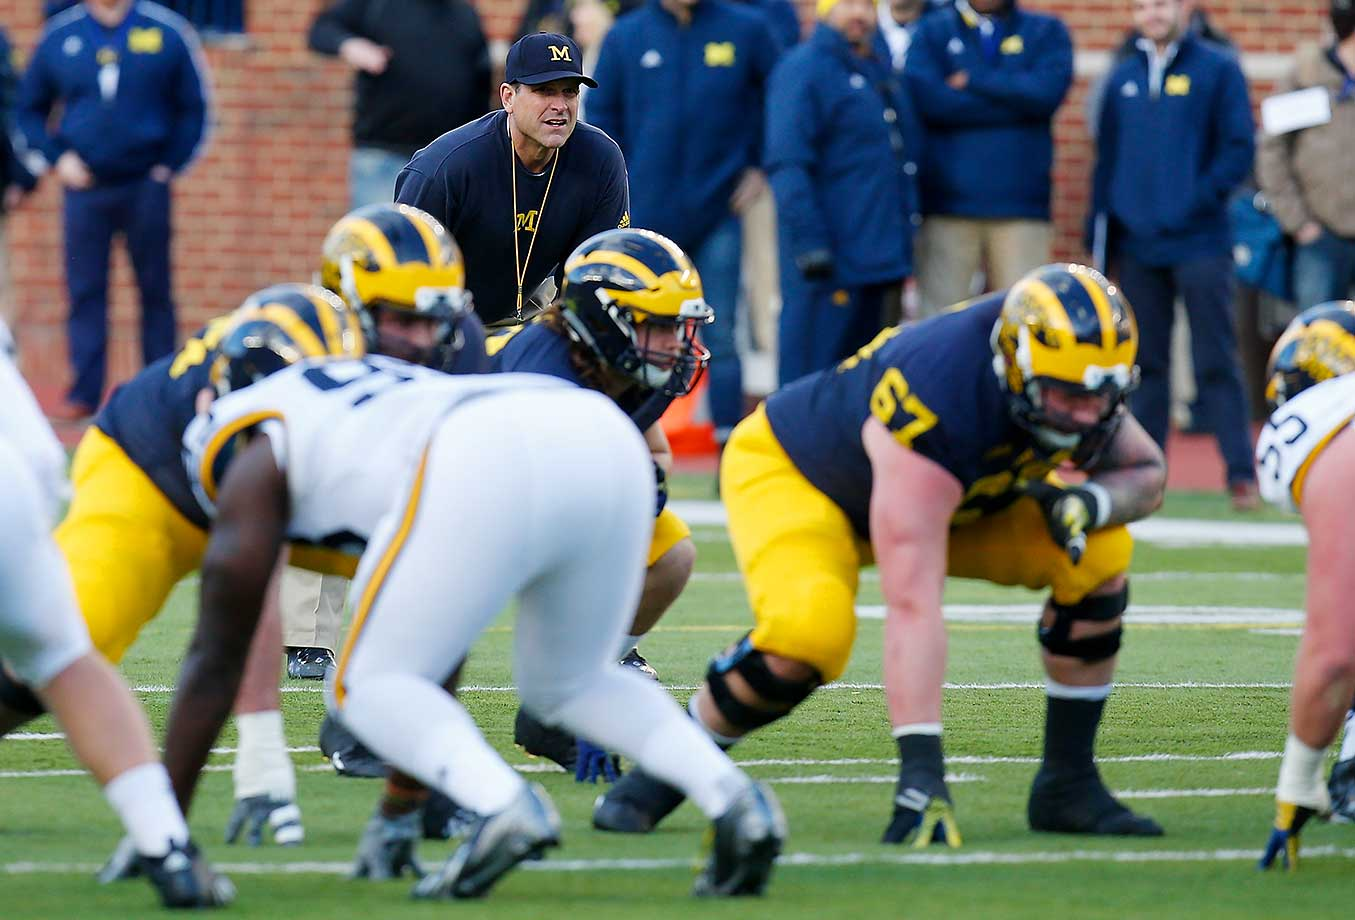 Head coach Jim Harbaugh watches play during the Michigan spring game in Ann Arbor.